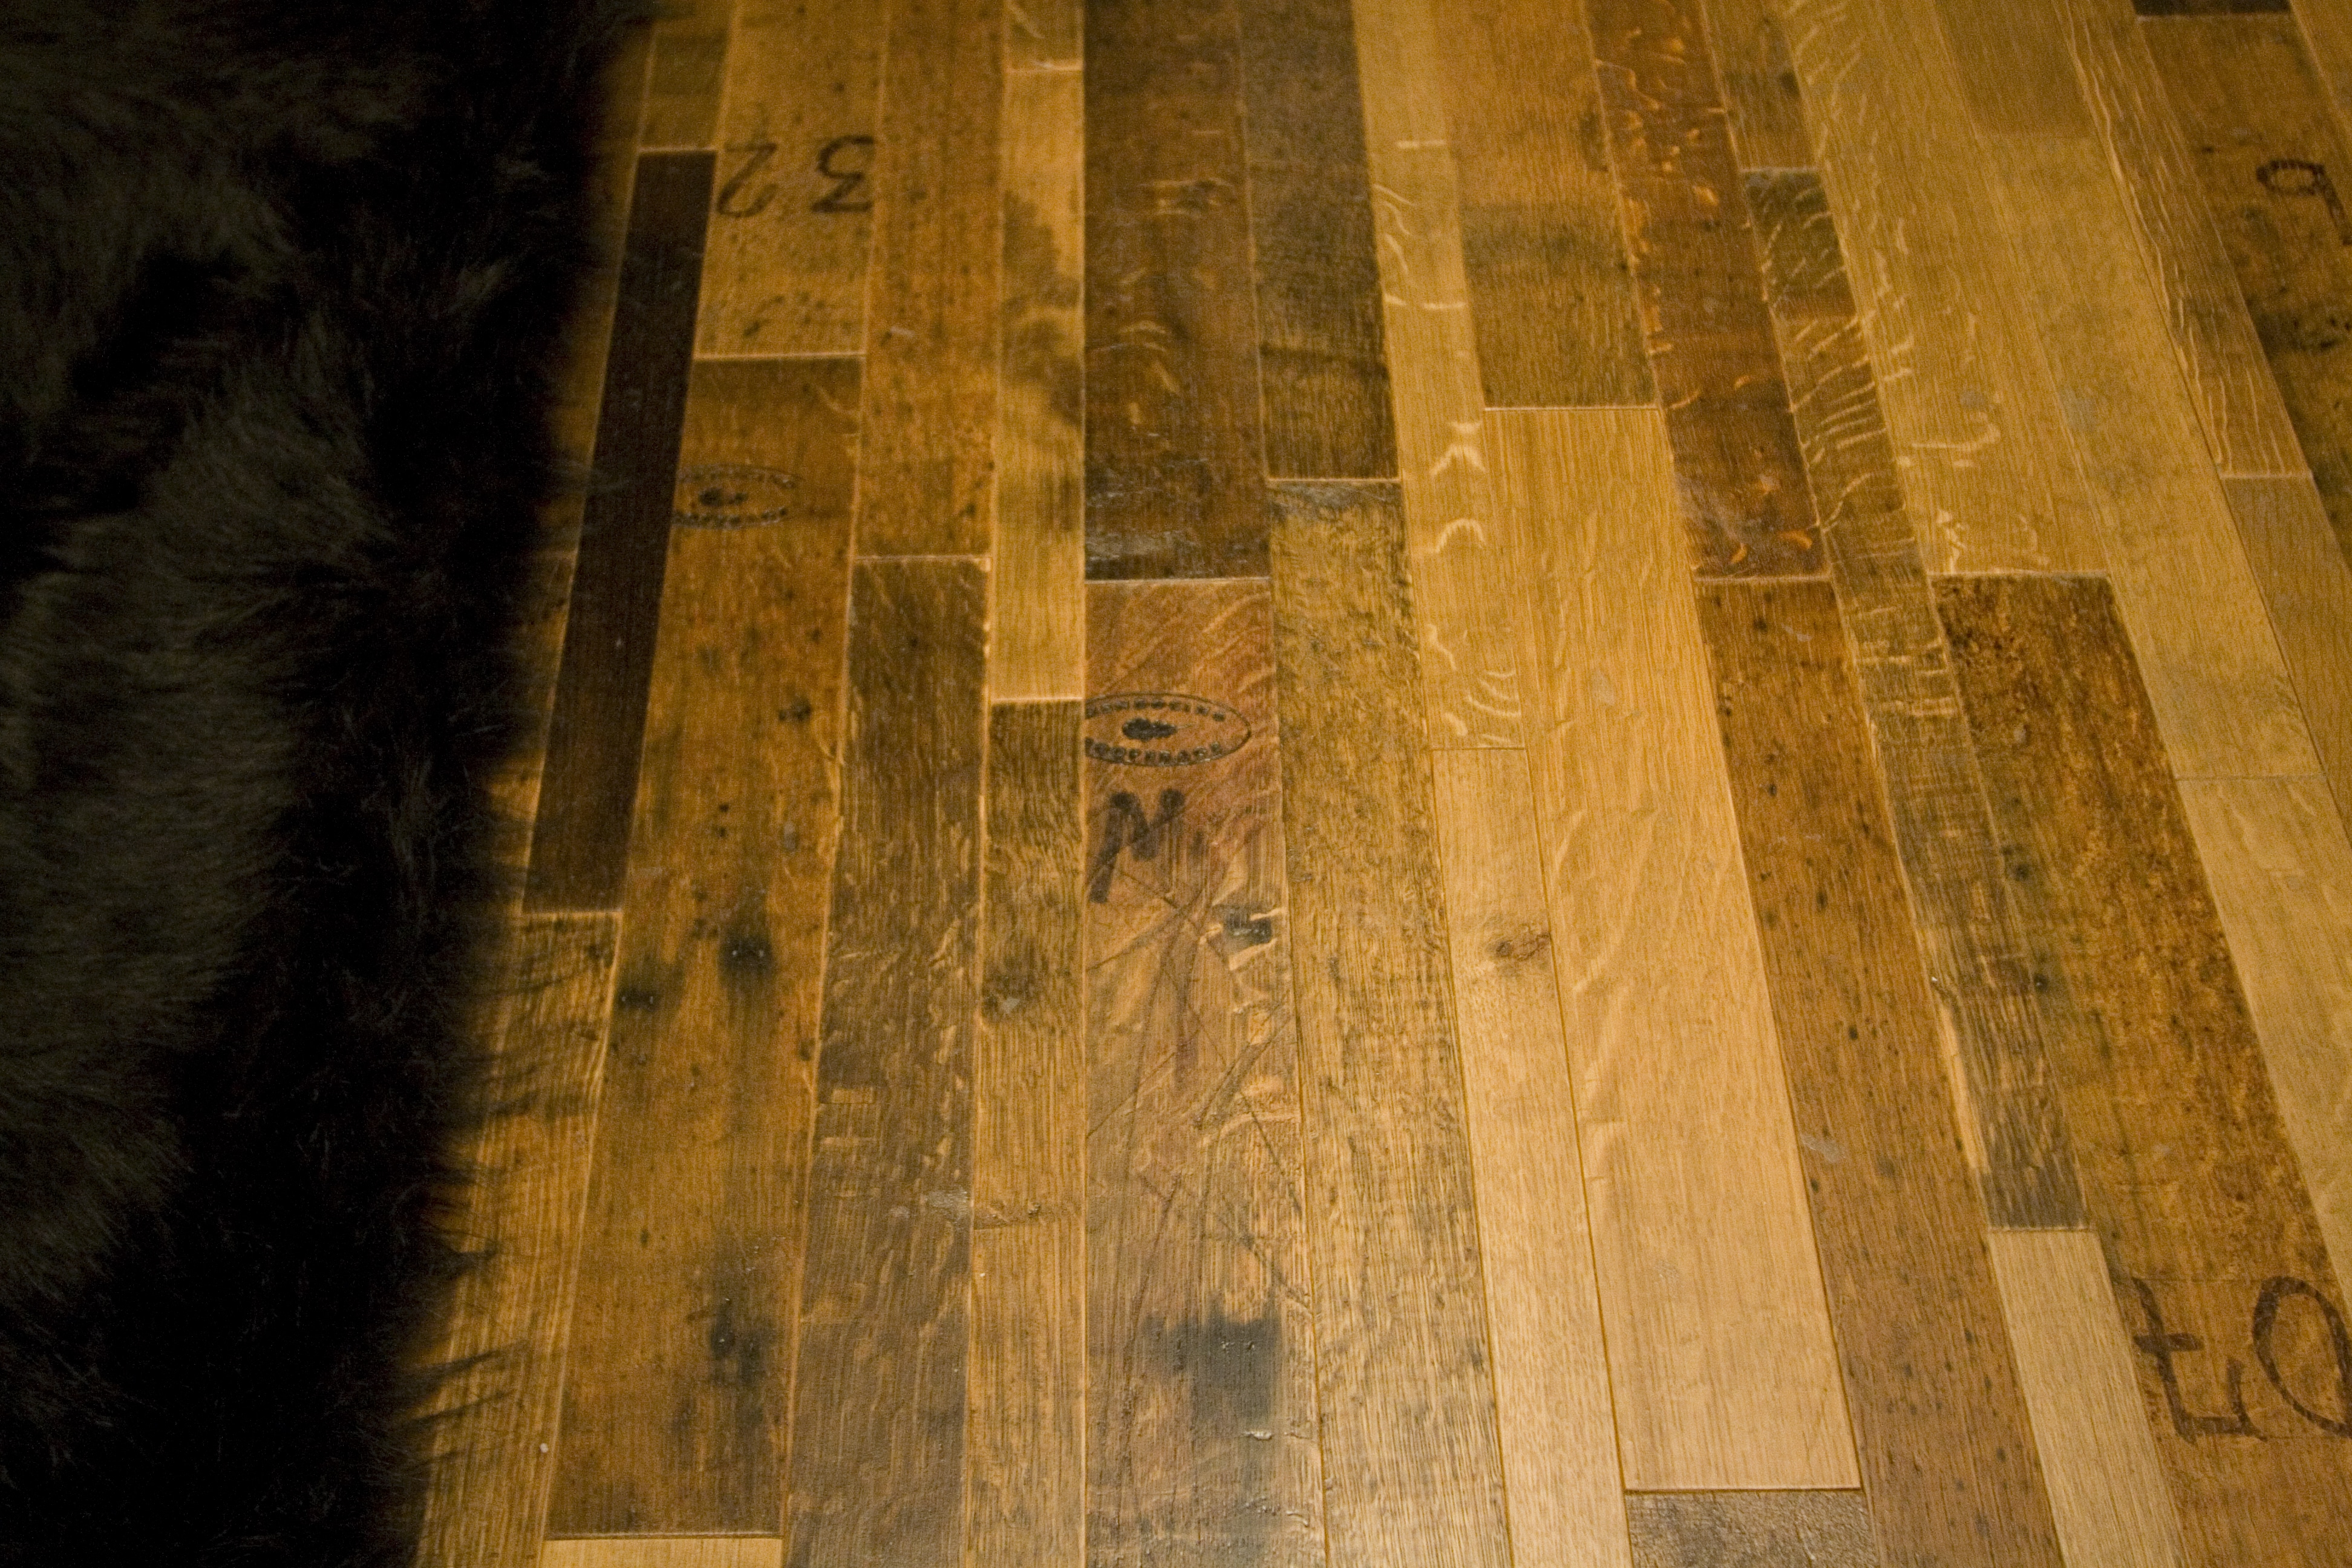 Reclaimed oak wine barrel flooring is one of the most popular choices. Not only is the material beautiful, it is also eco-friendly.